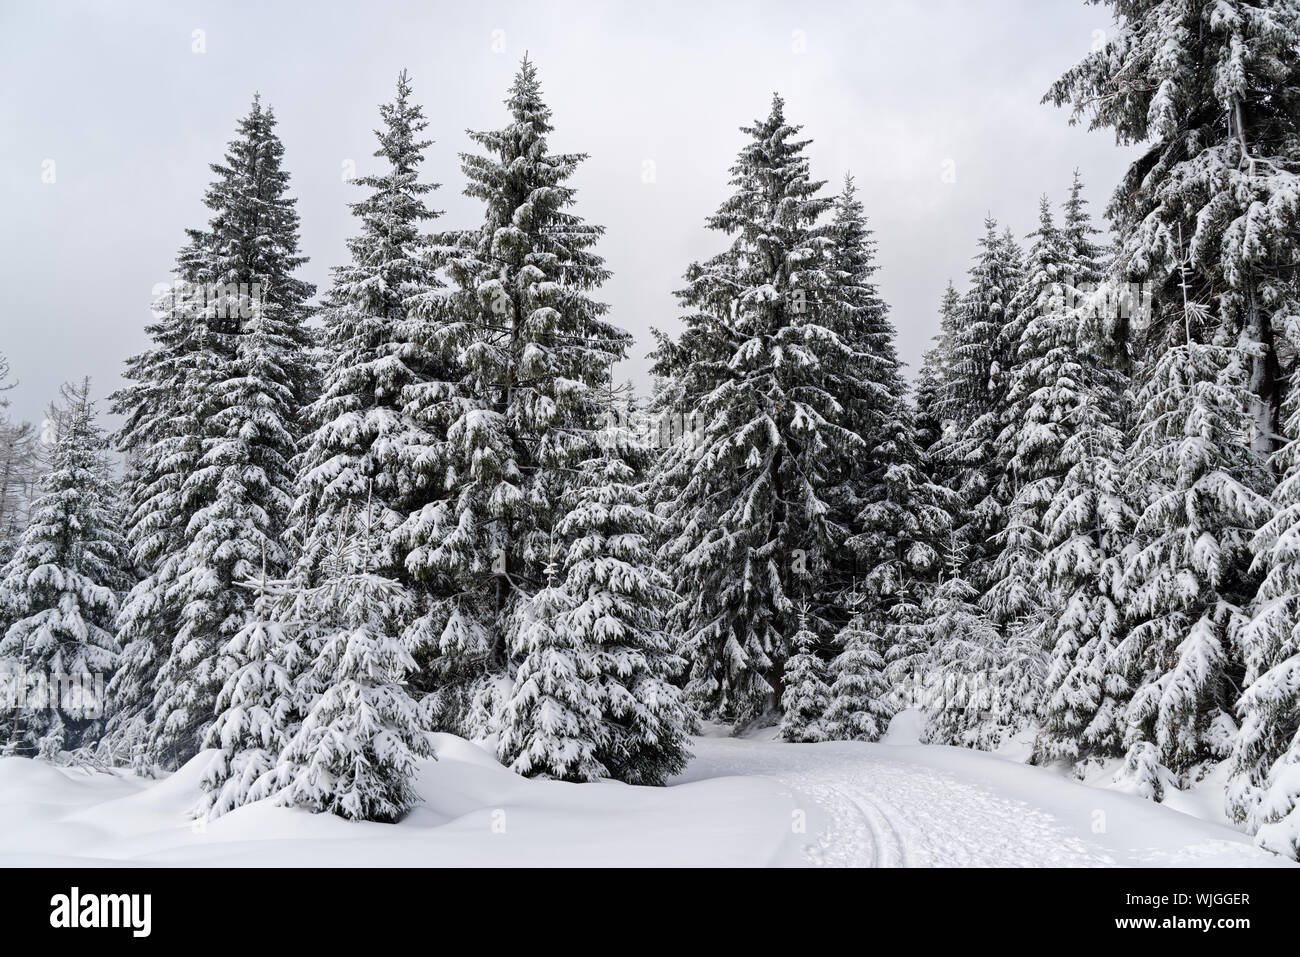 Winter forest in Harz mountains national park, Germany Stock Photo